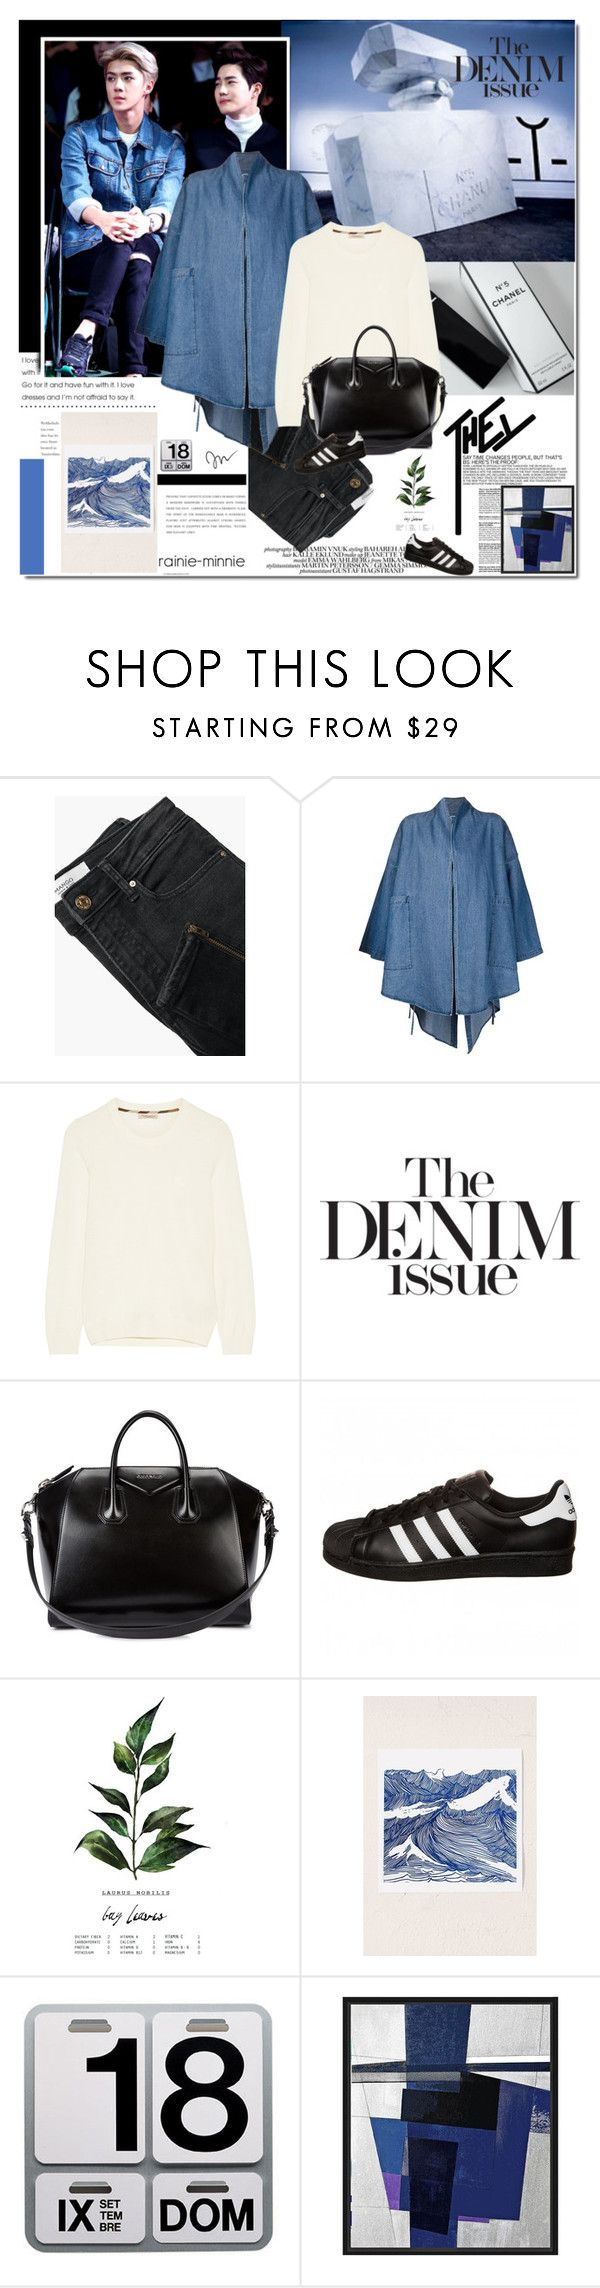 """The Denim Issue"" by rainie-minnie ❤ liked on Polyvore featuring MANGO, 69, Burberry, Givenchy, adidas Originals, Danese and Universal Lighting and Decor"